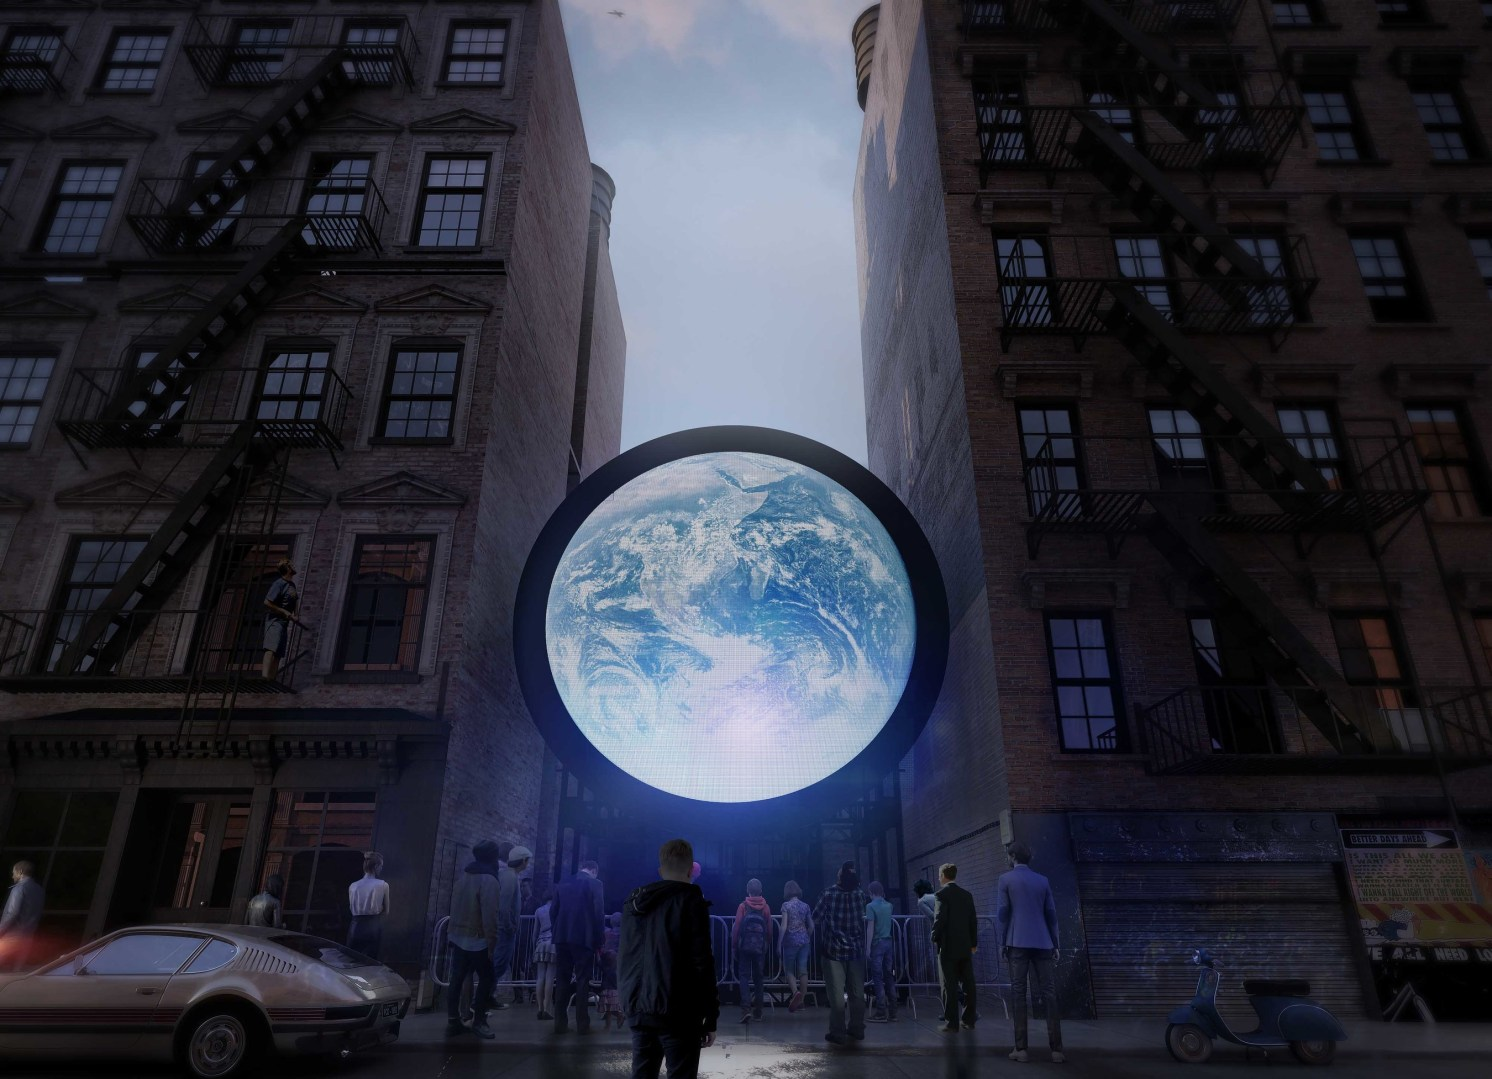 huge Earth marble between two tall buildings, with people looking up at it